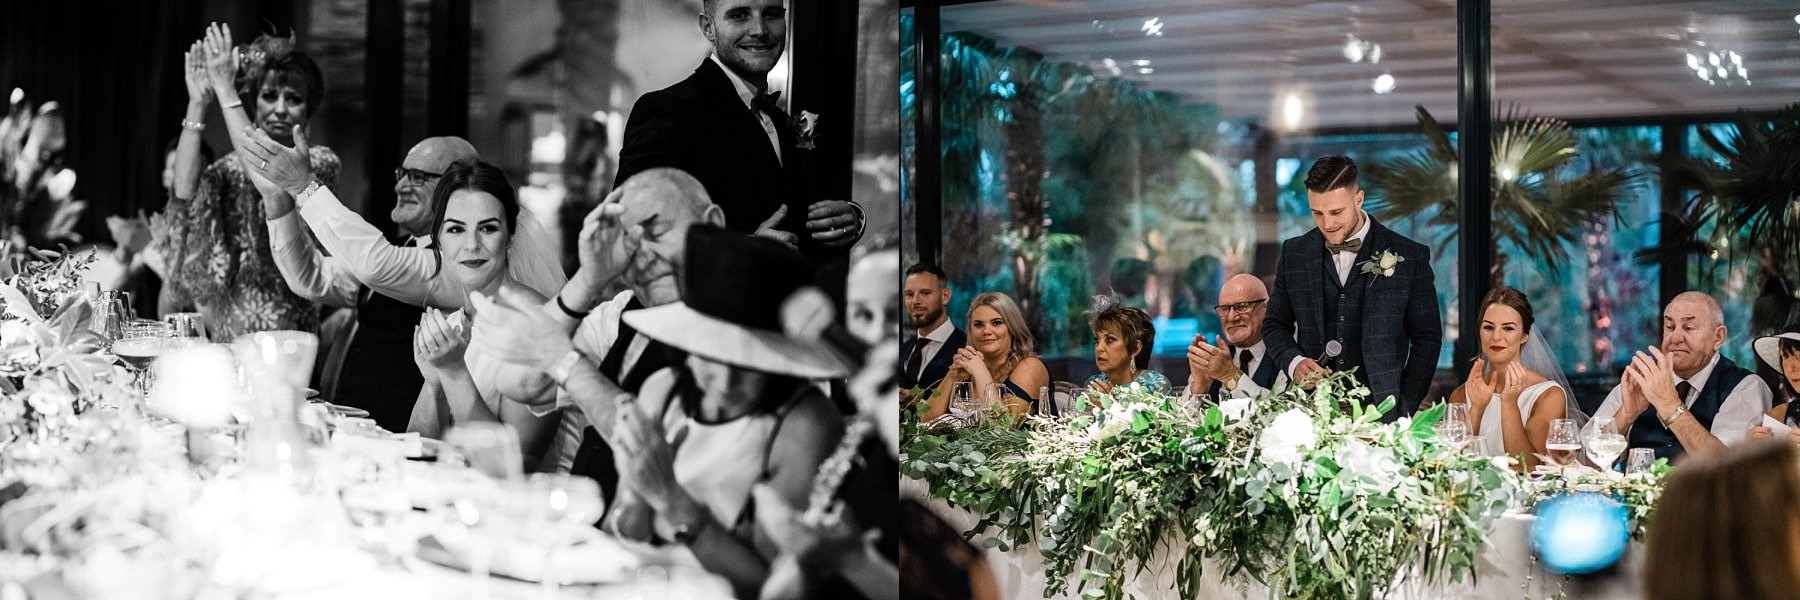 grandpa wiping tear Le petite Chateau wedding - Newcastle Wedding Photographer